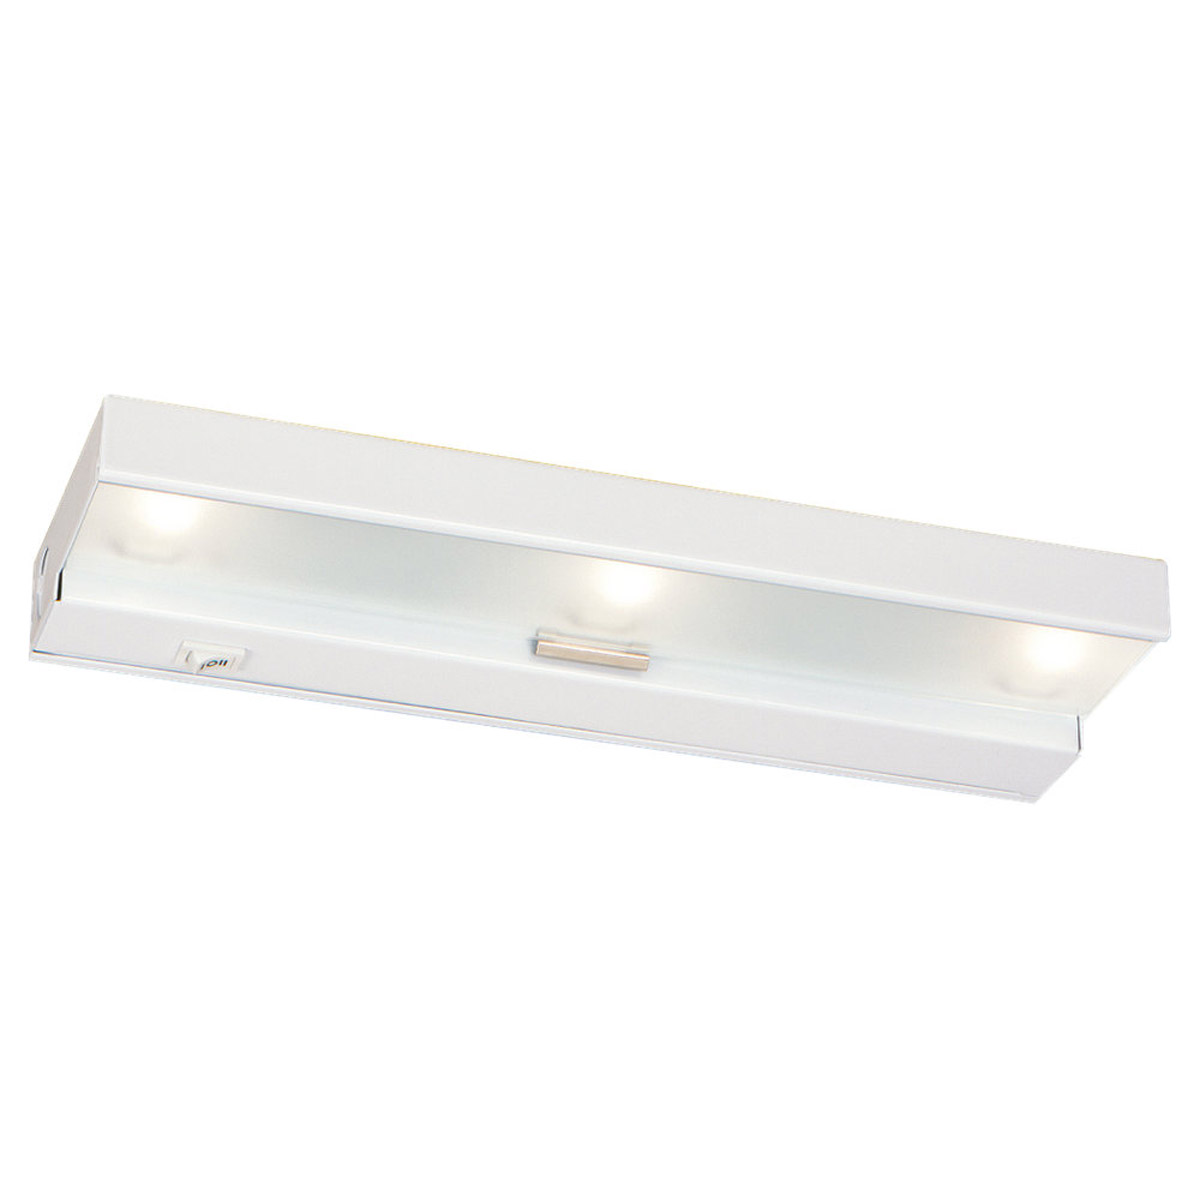 Sea Gull Lighting Undercabinet Lighting 3 Light Undercabinet Xenon in White 98019-15